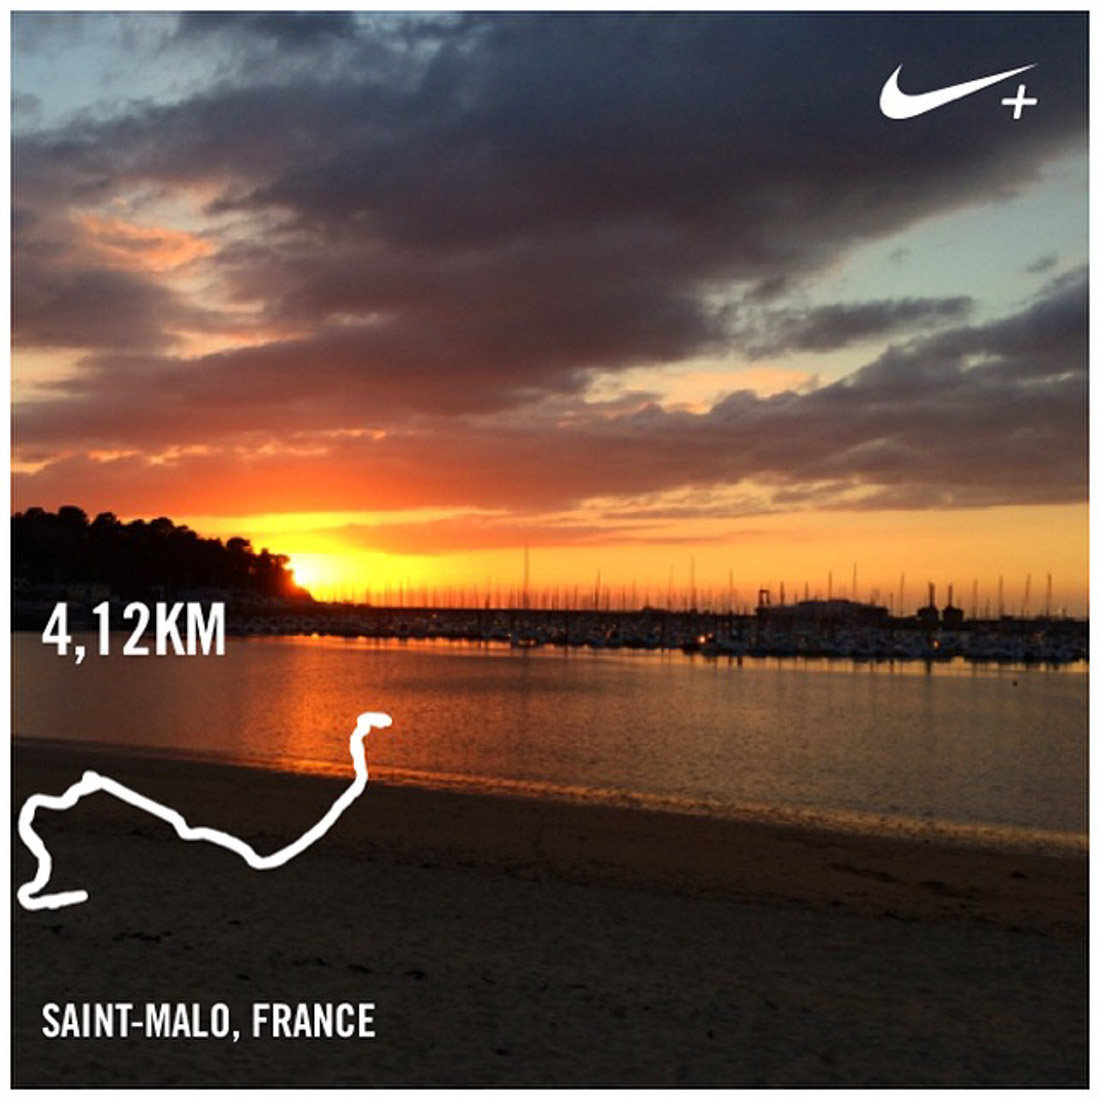 run-nike-plus-running-saint-malo